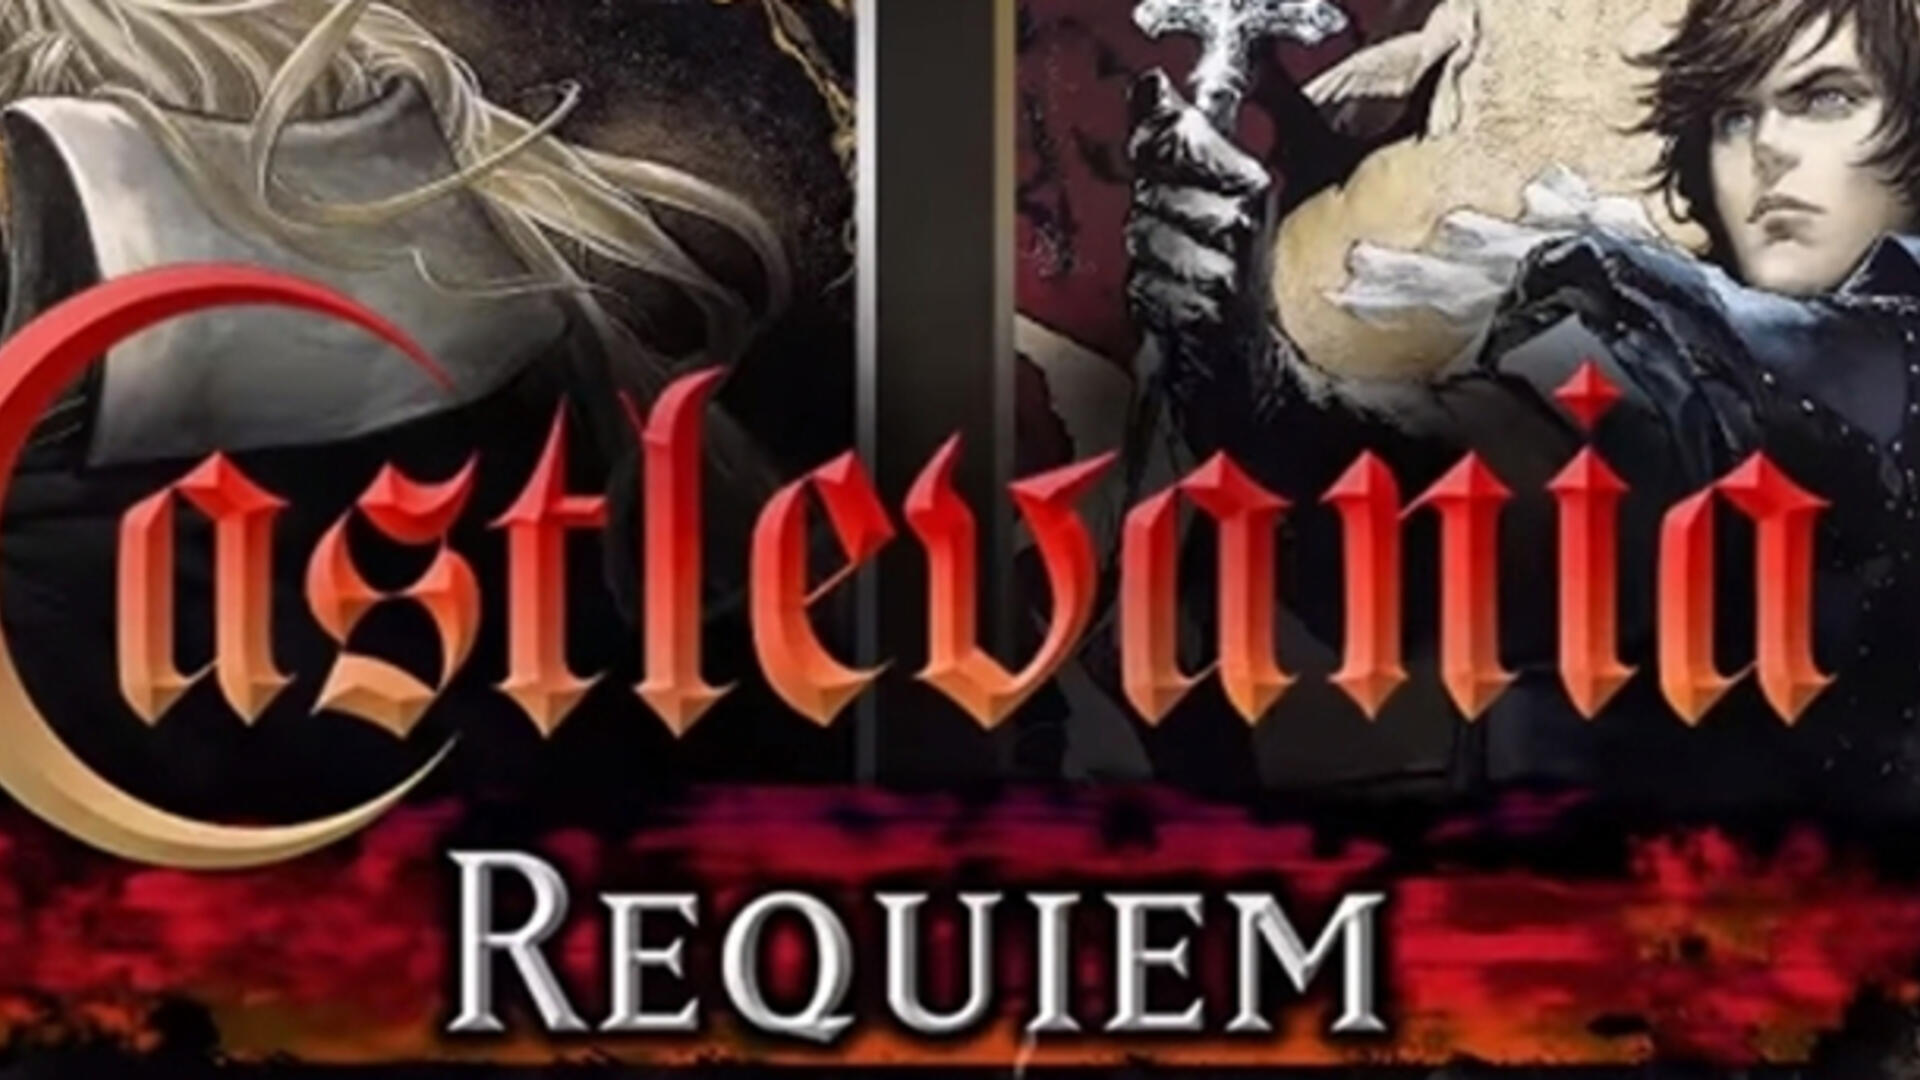 Castlevania: Symphony of the Night for PS4 Won't Have the Original Game's Iconic Localization